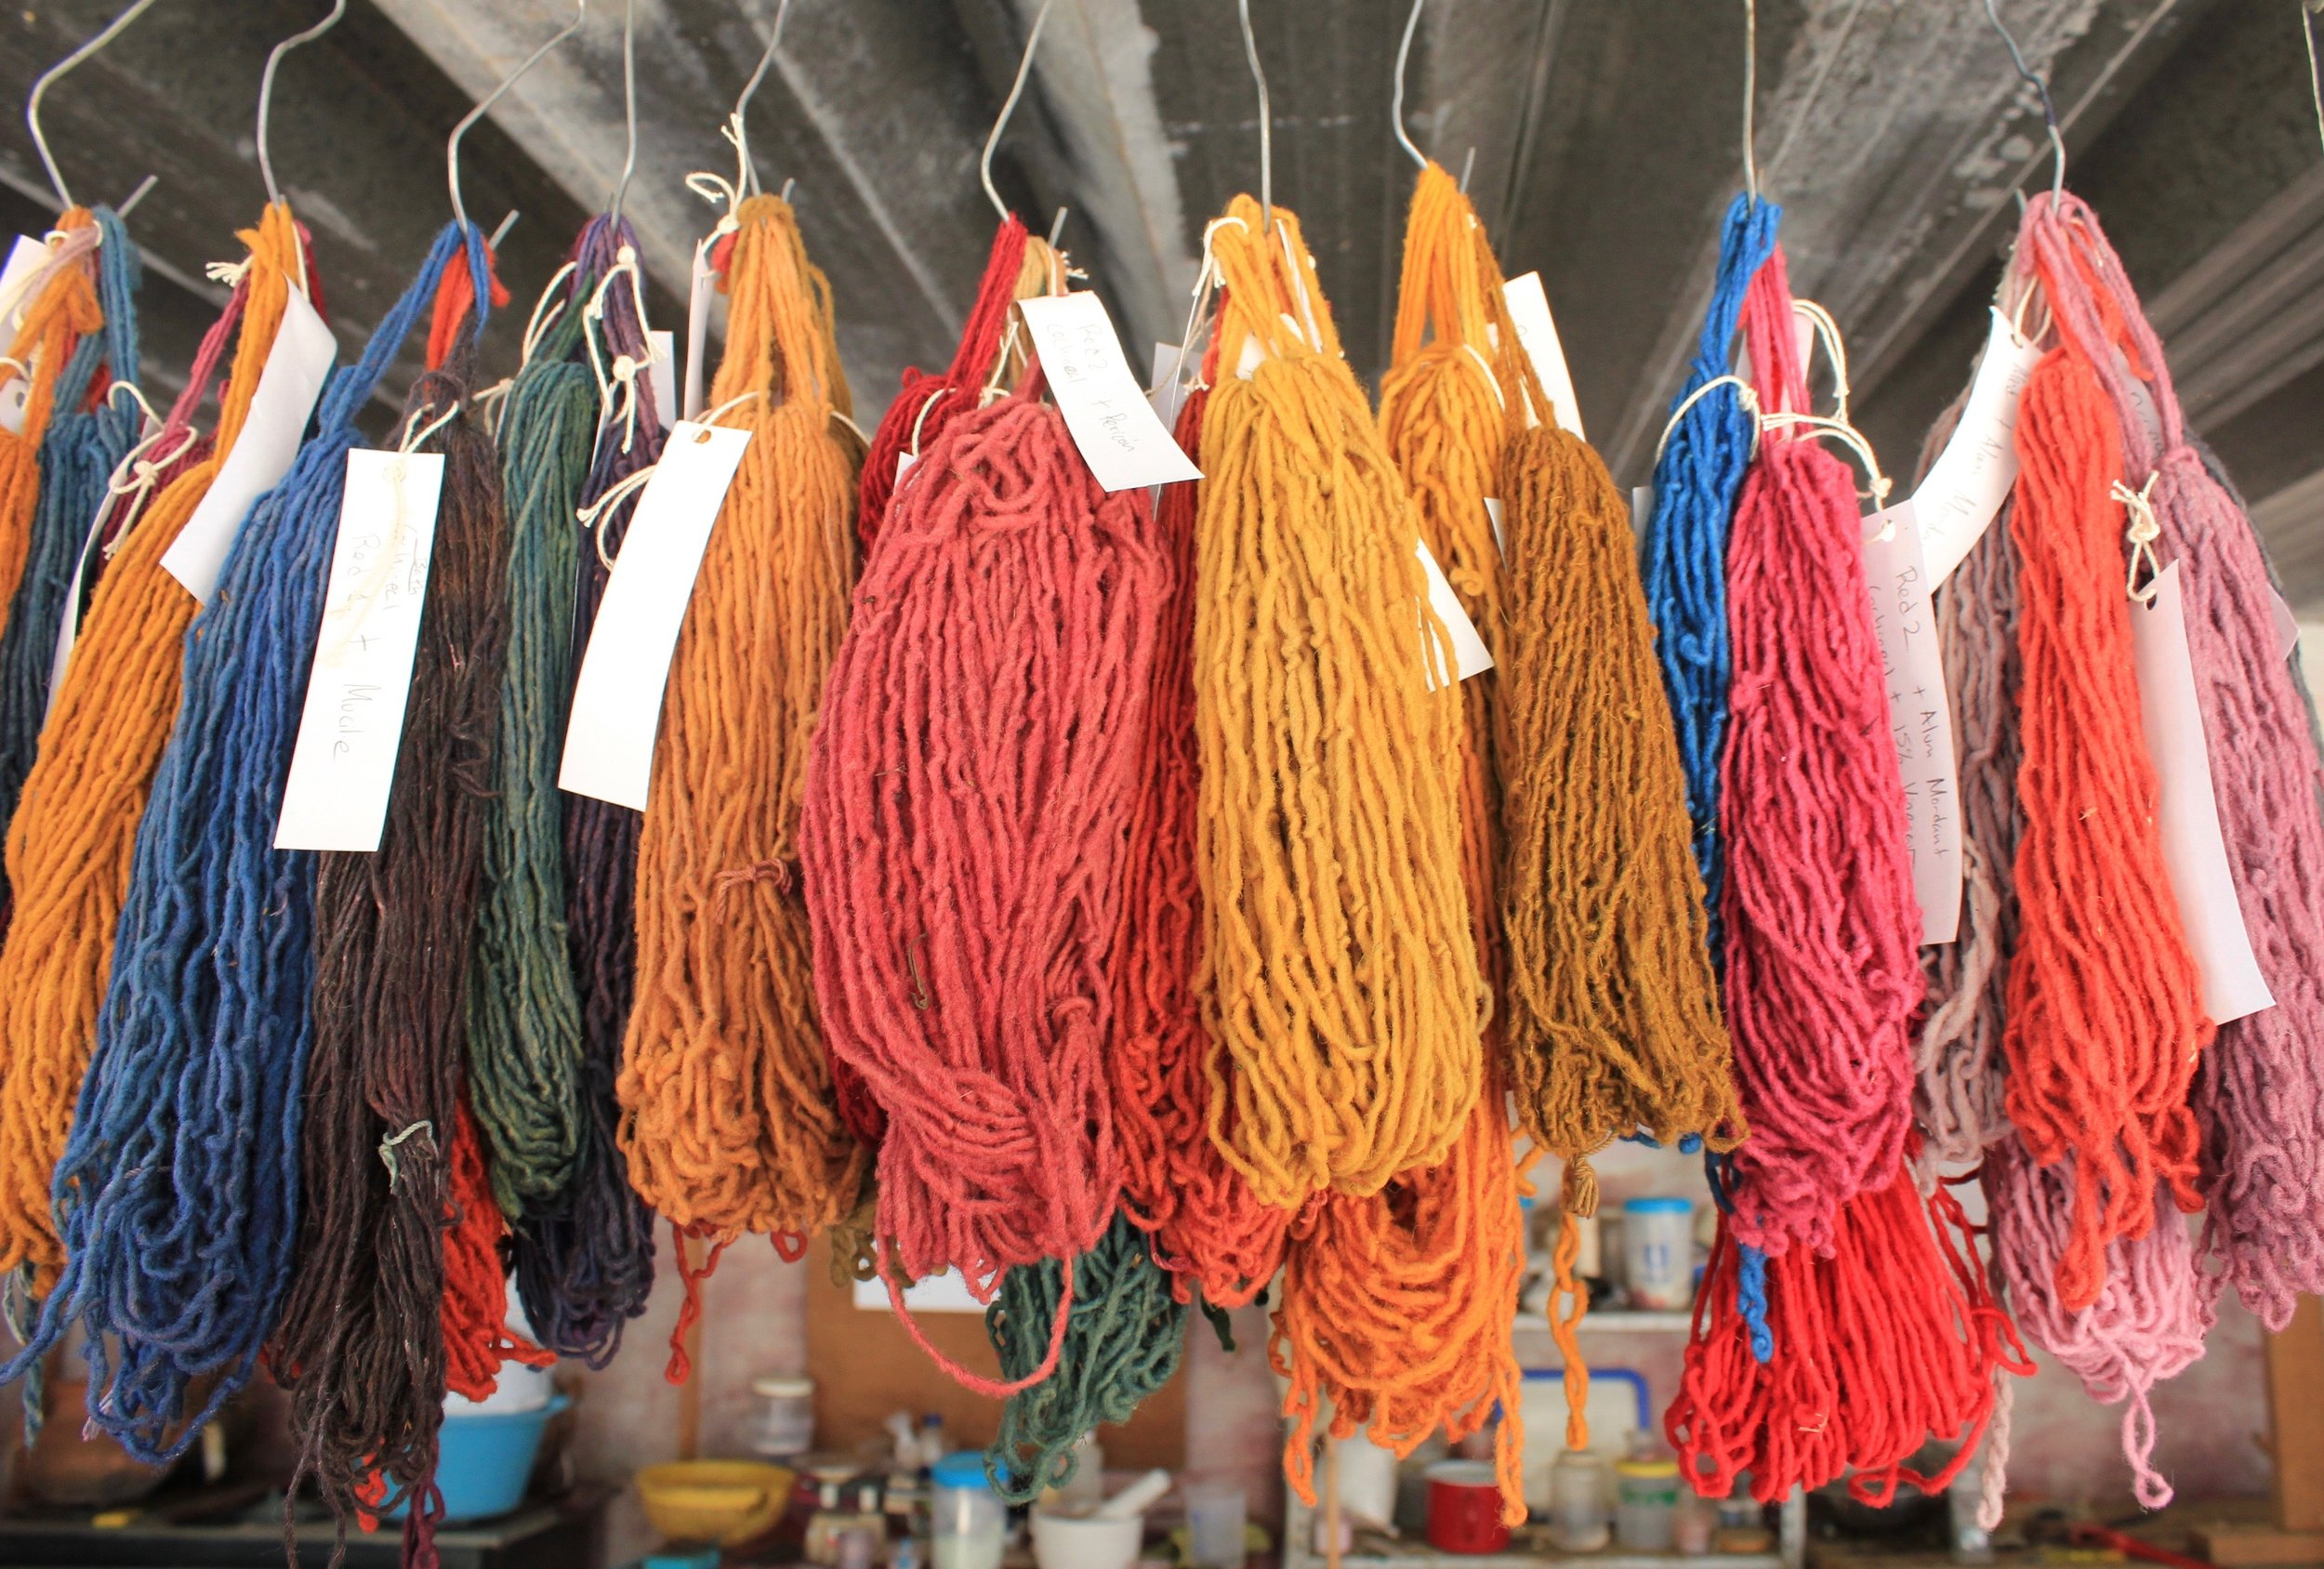 Fibers dyed and hanging to dry at Tlapanochestli